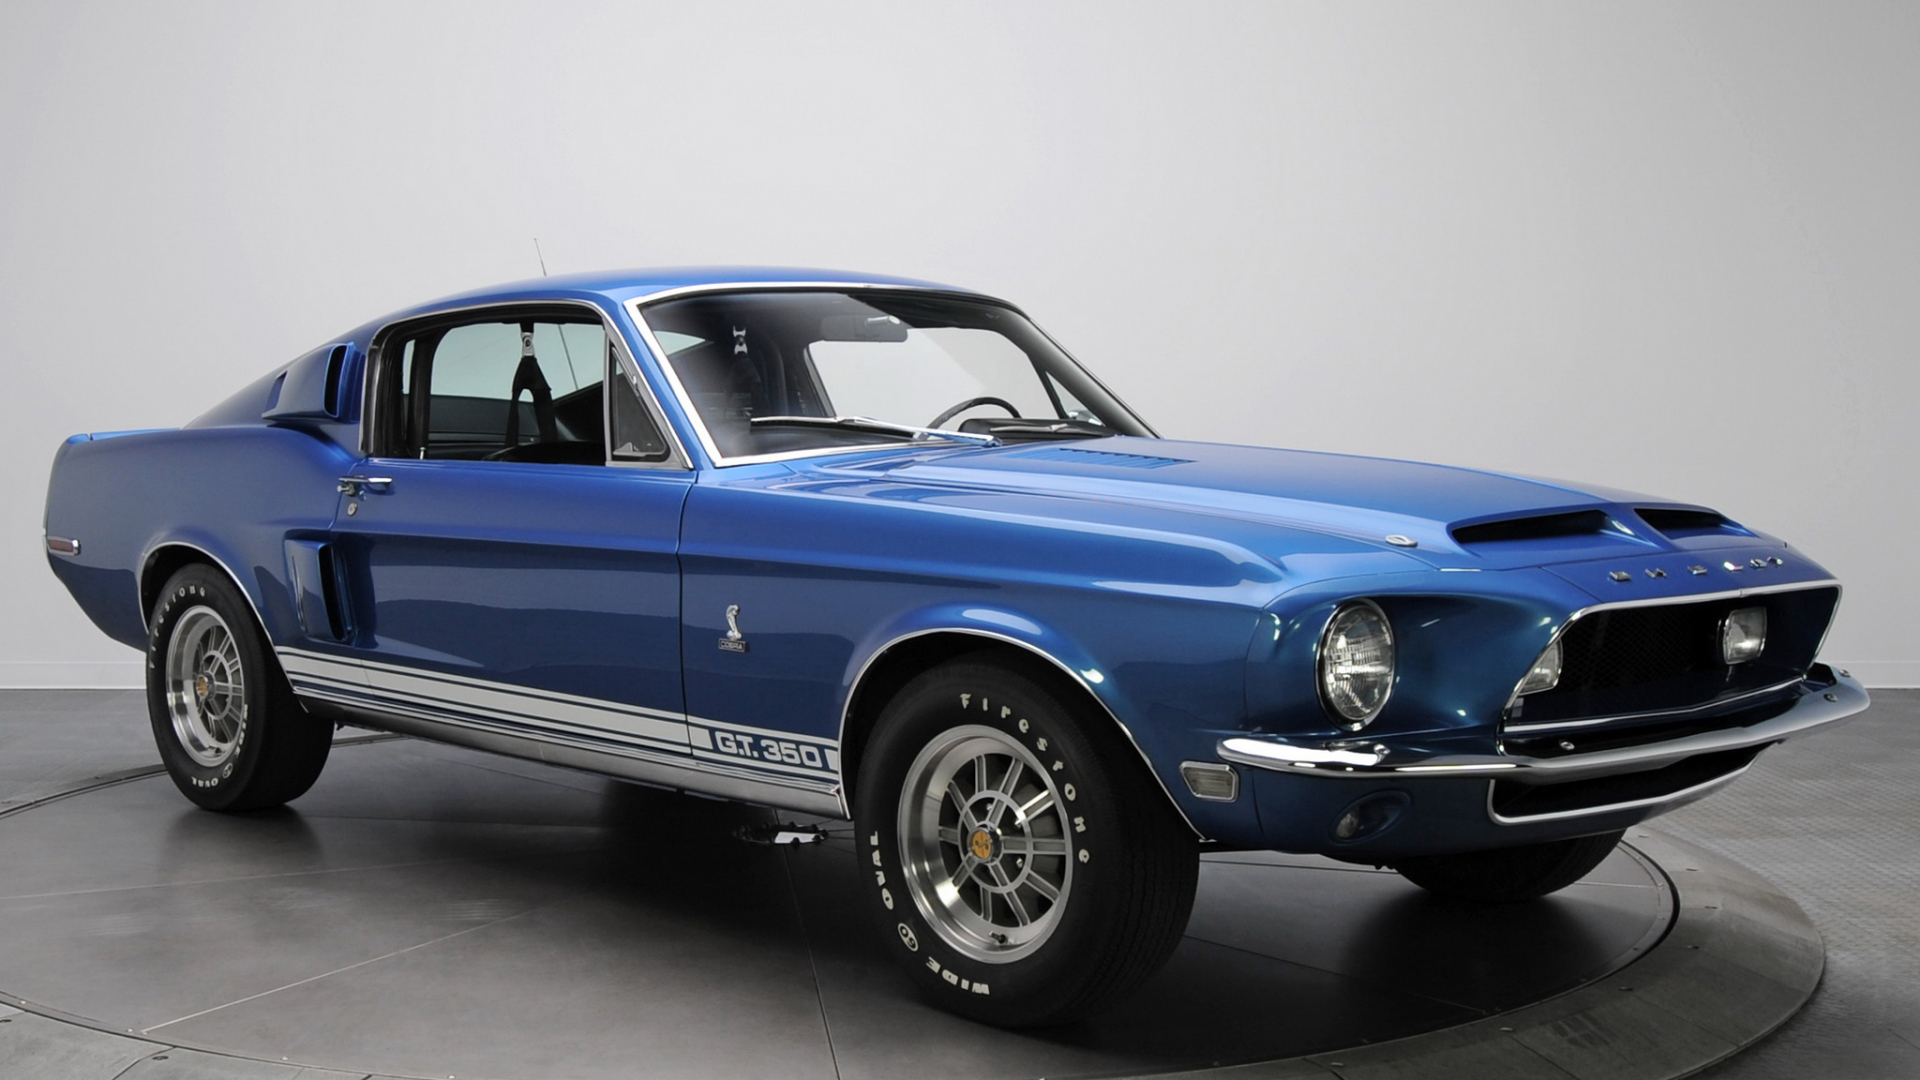 Free download 1968 Shelby GT350 ford mustang classic muscle wallpaper  background [2048x1536] for your Desktop, Mobile & Tablet | Explore 44+  GT350 Wallpaper | Ford Mustang Shelby 2015 Wallpaper, Shelby Mustang  Desktop Wallpapers, 2016 Mustang GT Wallpaper